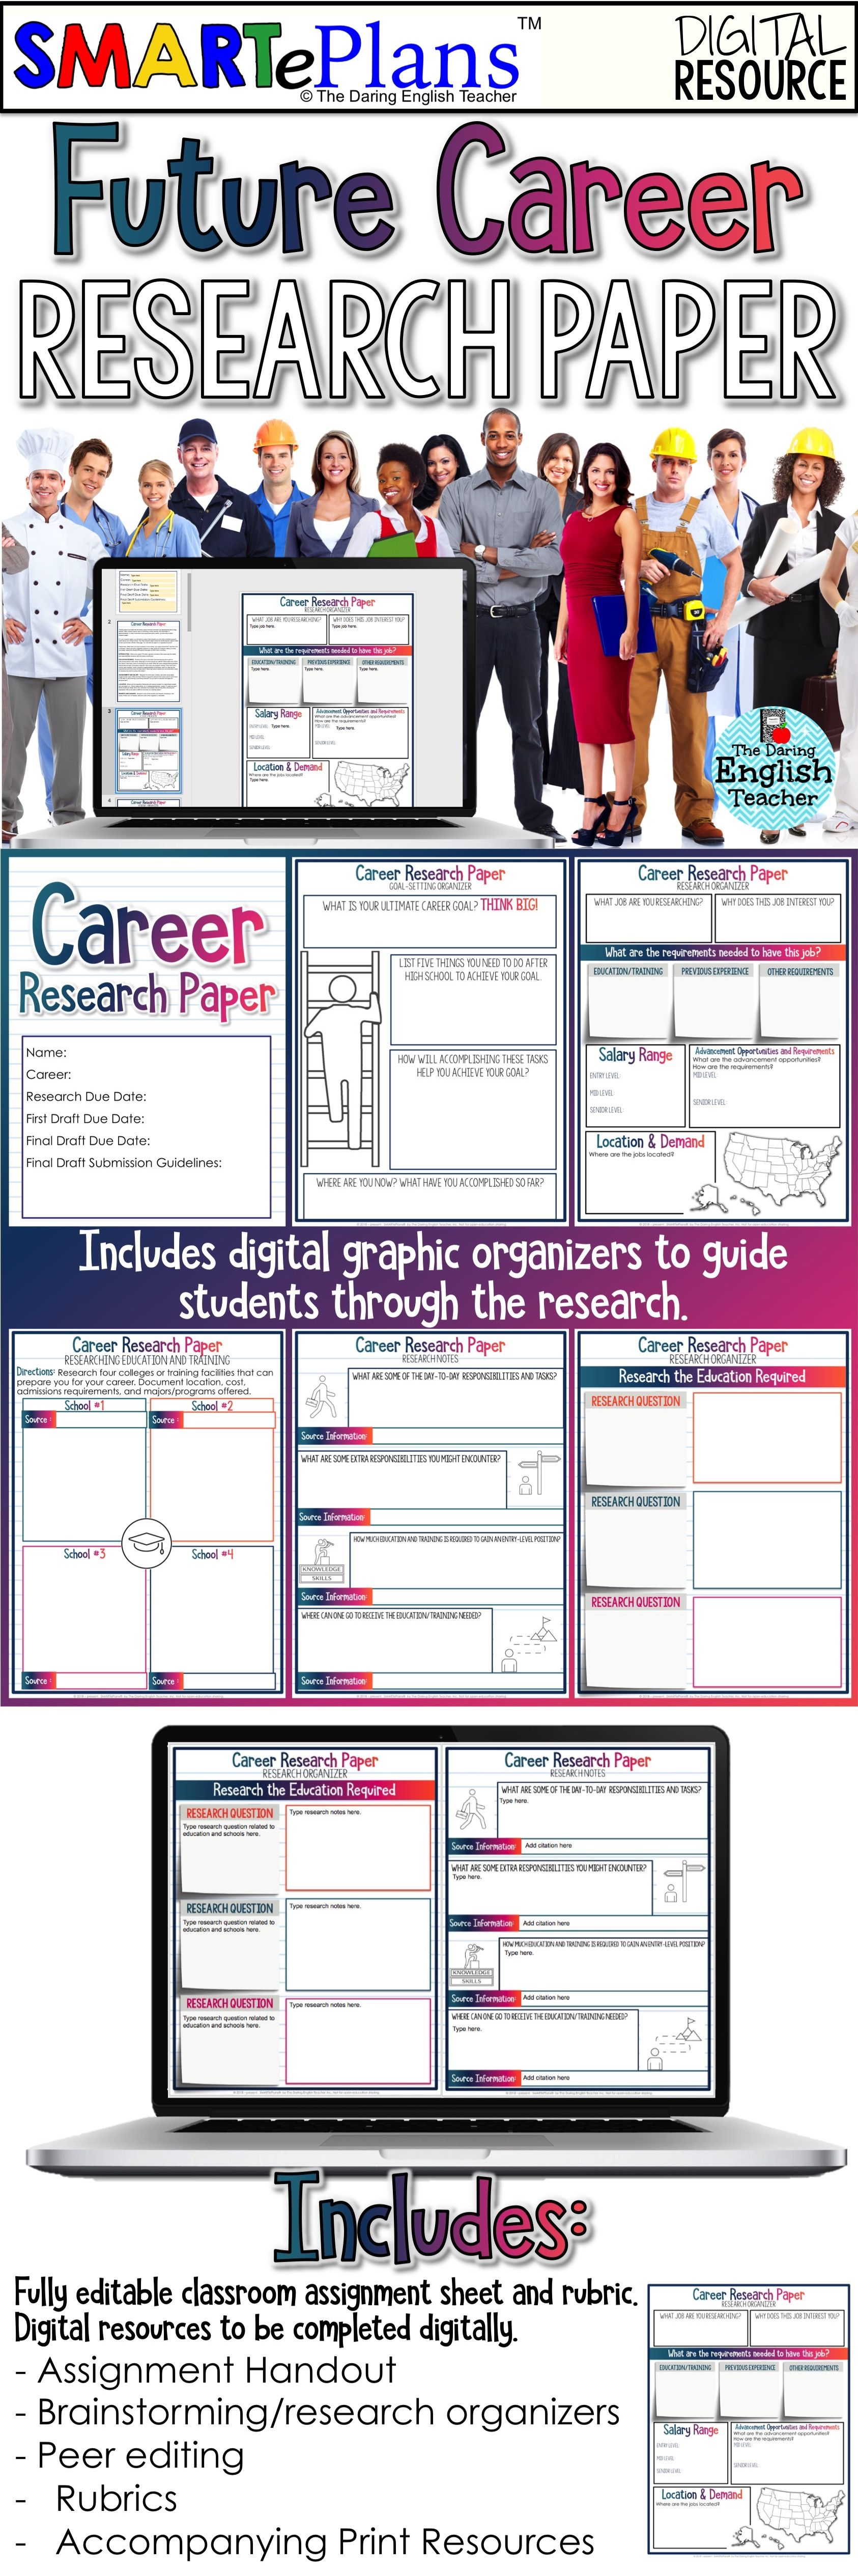 Smarteplans Digital Career Research Paper With Images